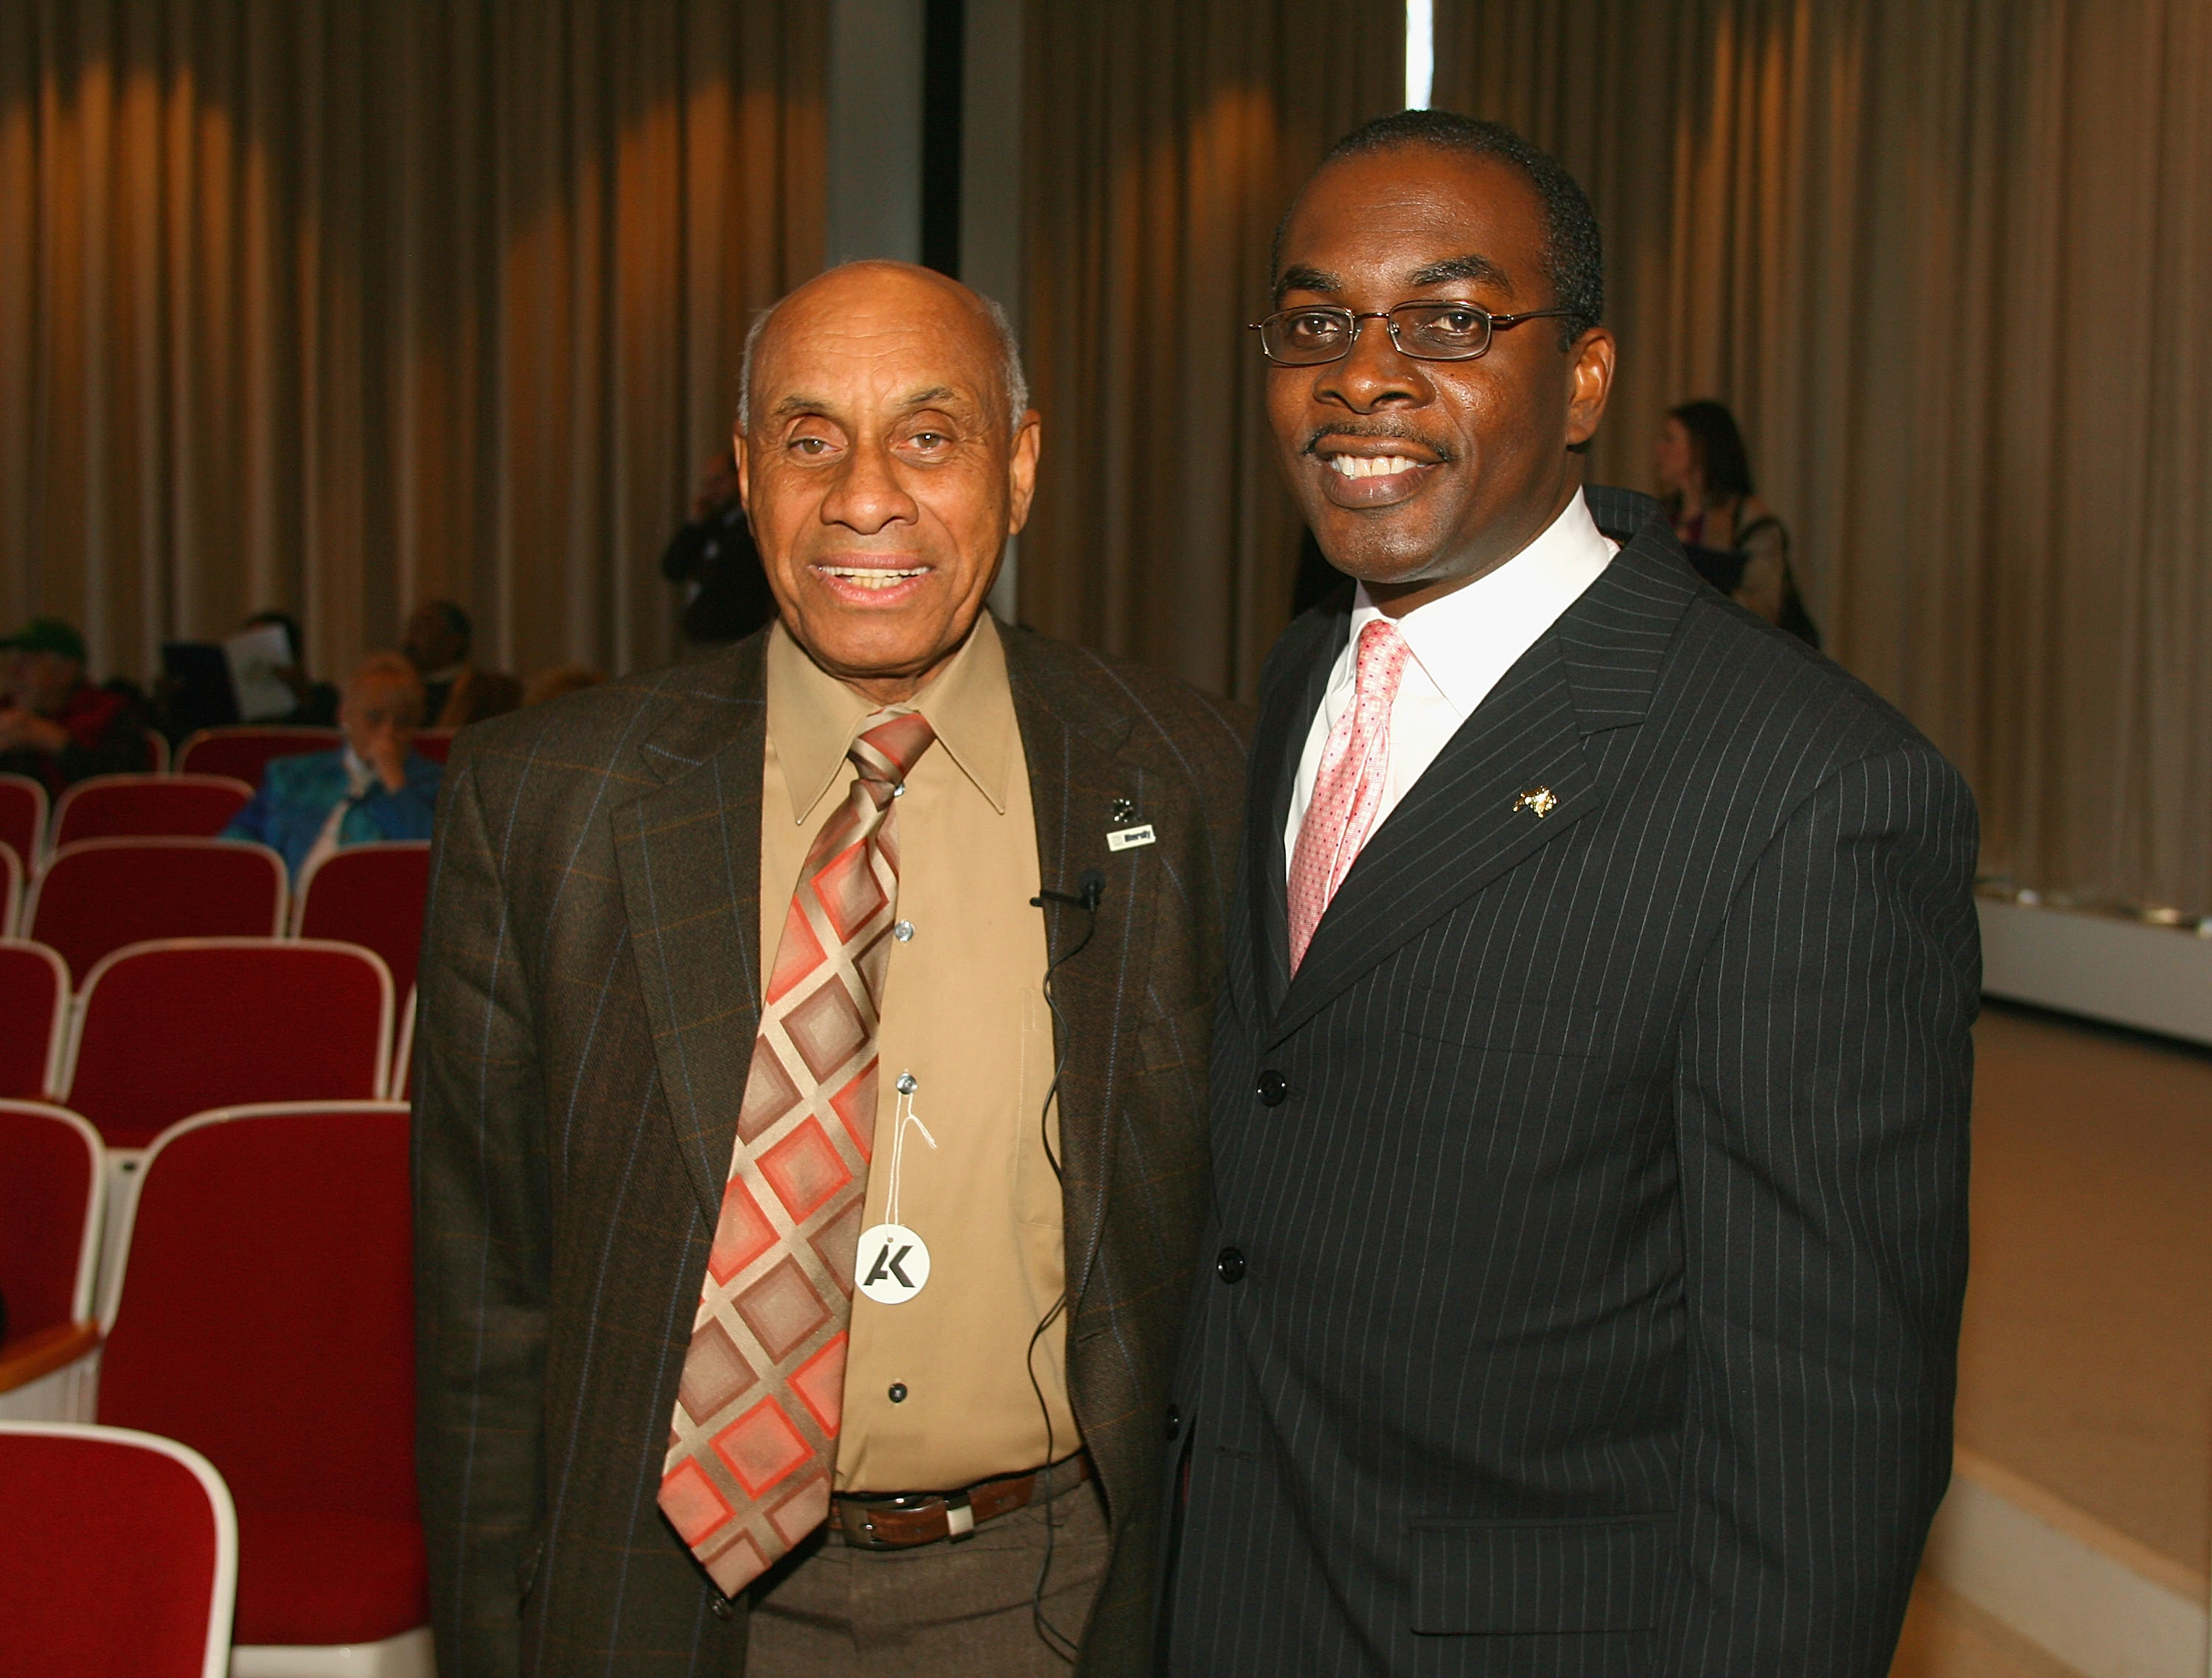 BUFFALO, NY - MARCH 26: Willie O'Ree, Director of Youth Development for the NHL, meets with Buffalo Mayor Byron W. Brown the 2010 Willie O'Ree skills weekend - welcome celebration at the Albright Knox Art Gallery on March 26, 2010 in Buffalo, New York.  (